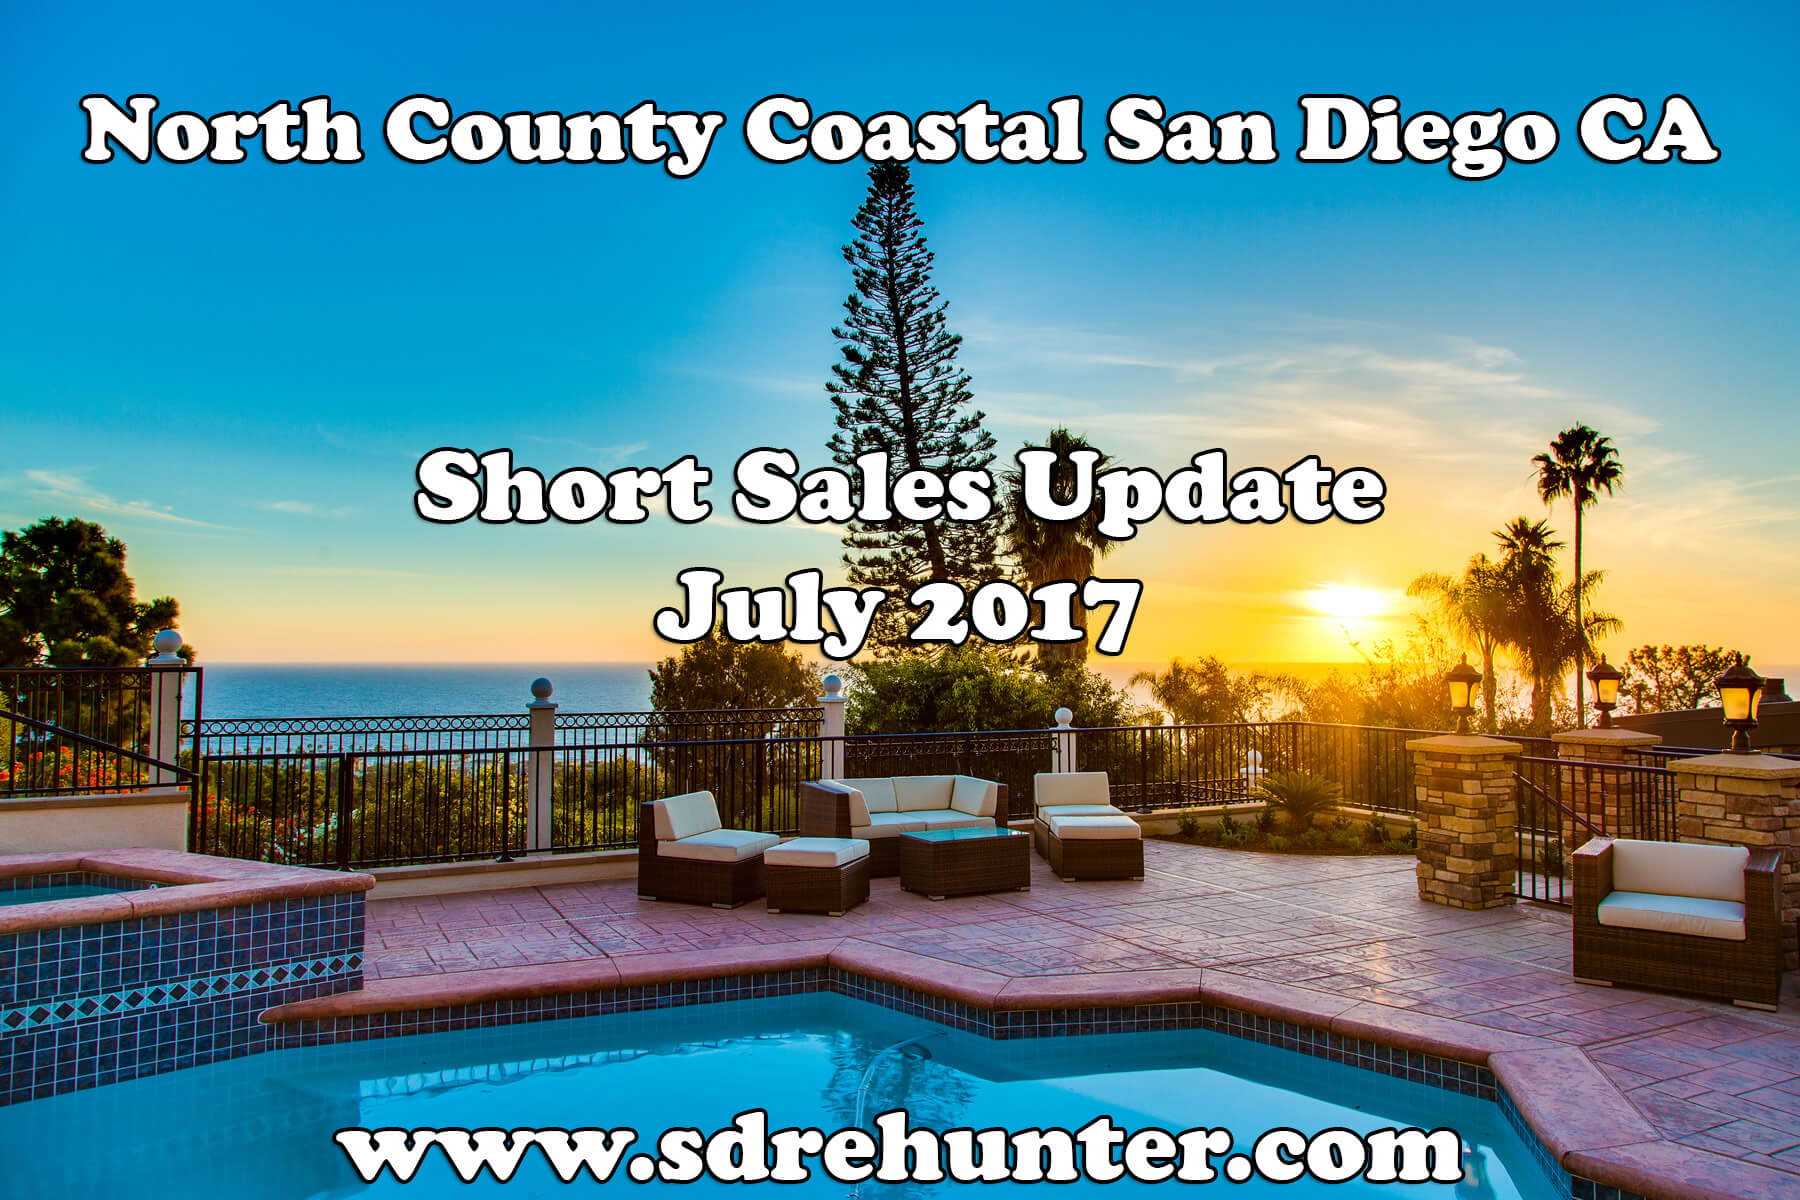 North County Coastal San Diego CA Short Sales Update - July 2017